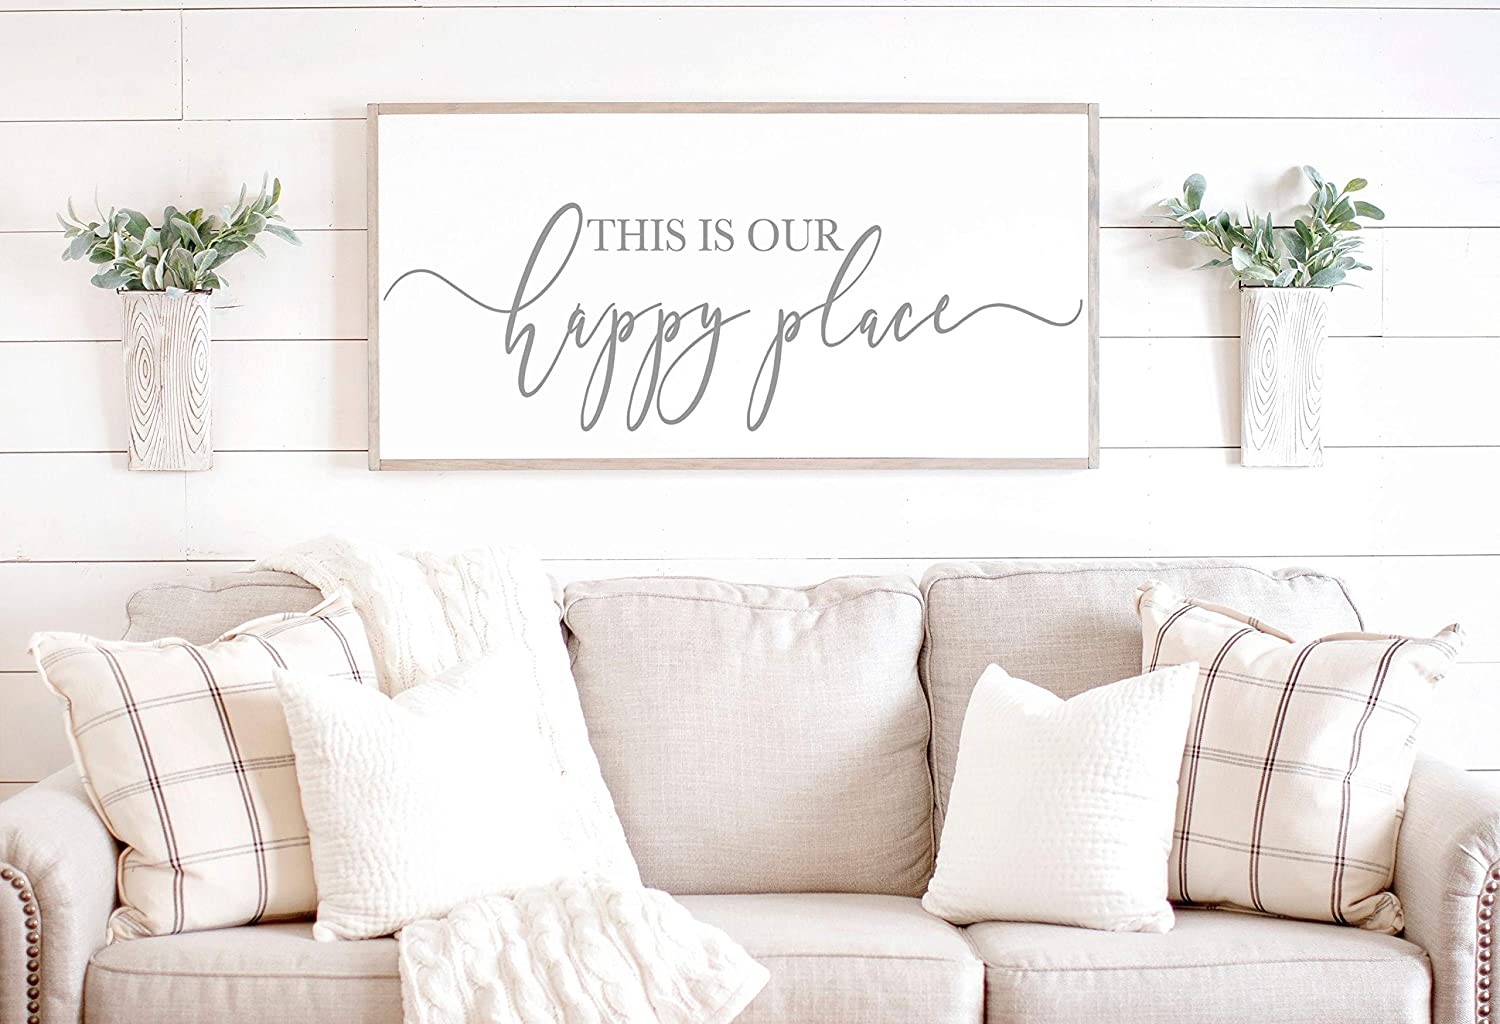 daoyiqi Wood Framed Sign 12x22'' Bible Verse Printable Wooden Prints This is Our Happy Place Sign Living Room Wall Decor Living Room Sign Happy Place Wood Sign Sign for Above Couch